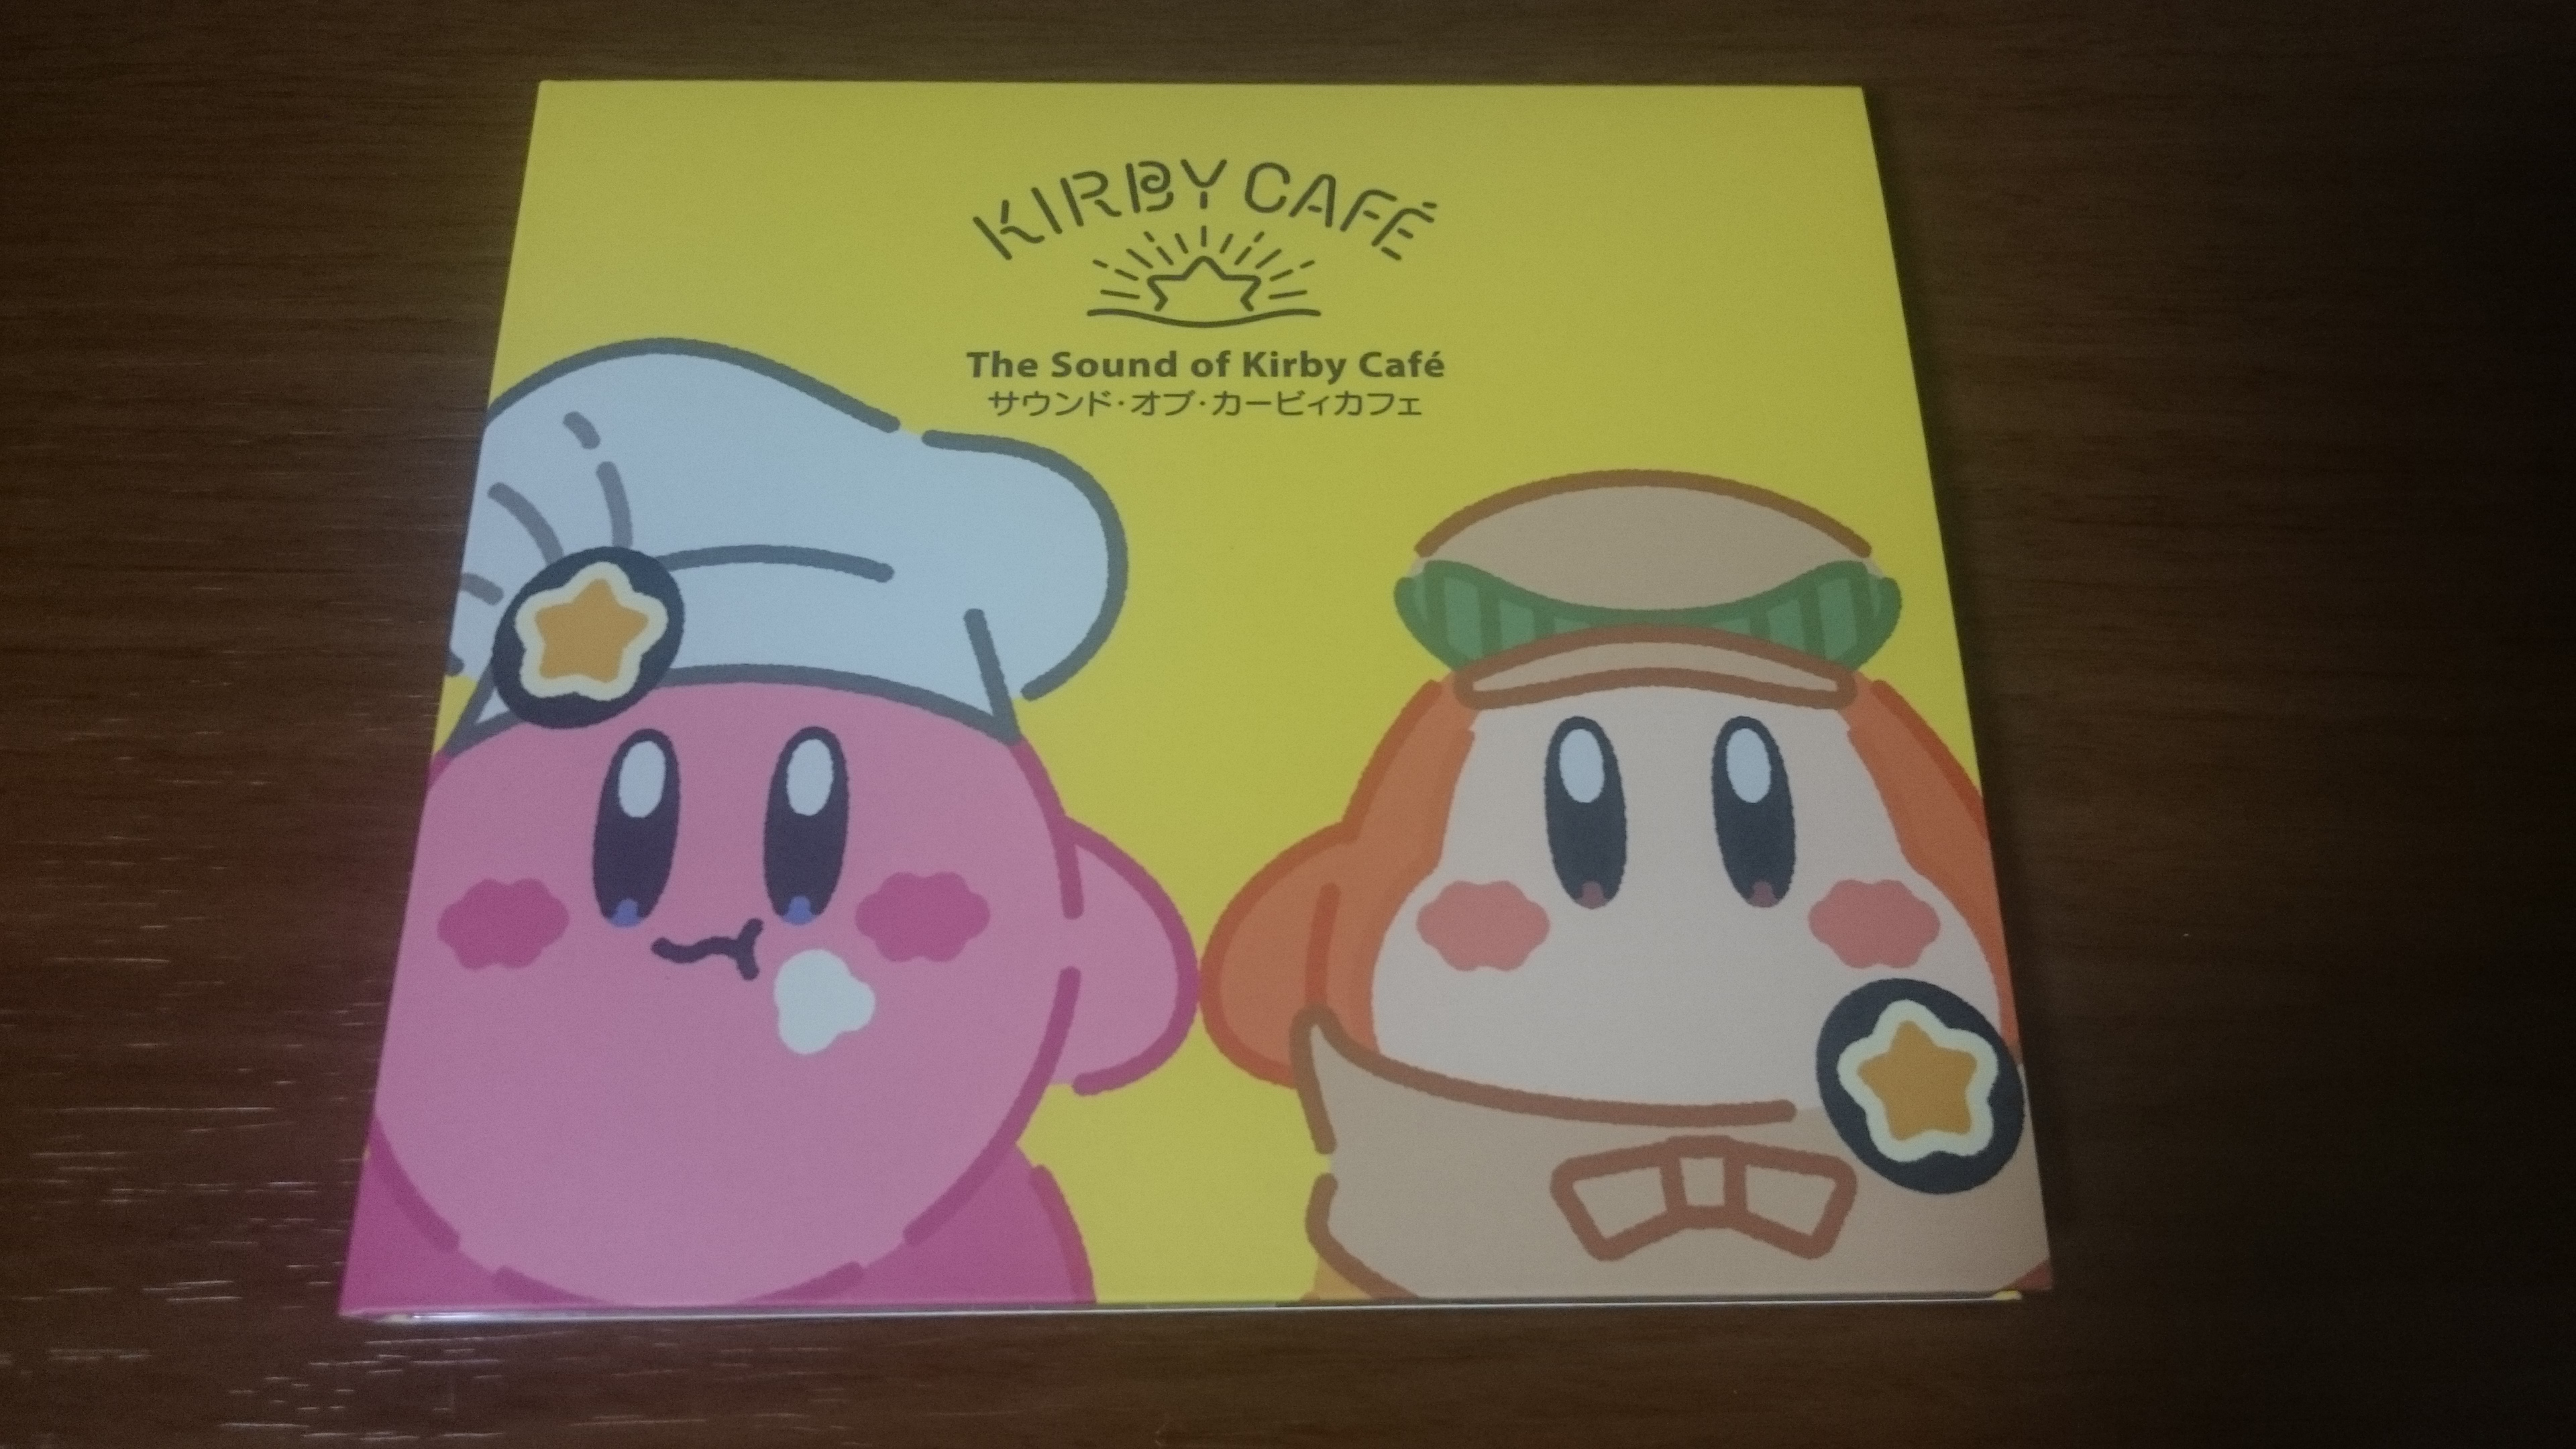 The Sound of Kirby Cafeのサントラ